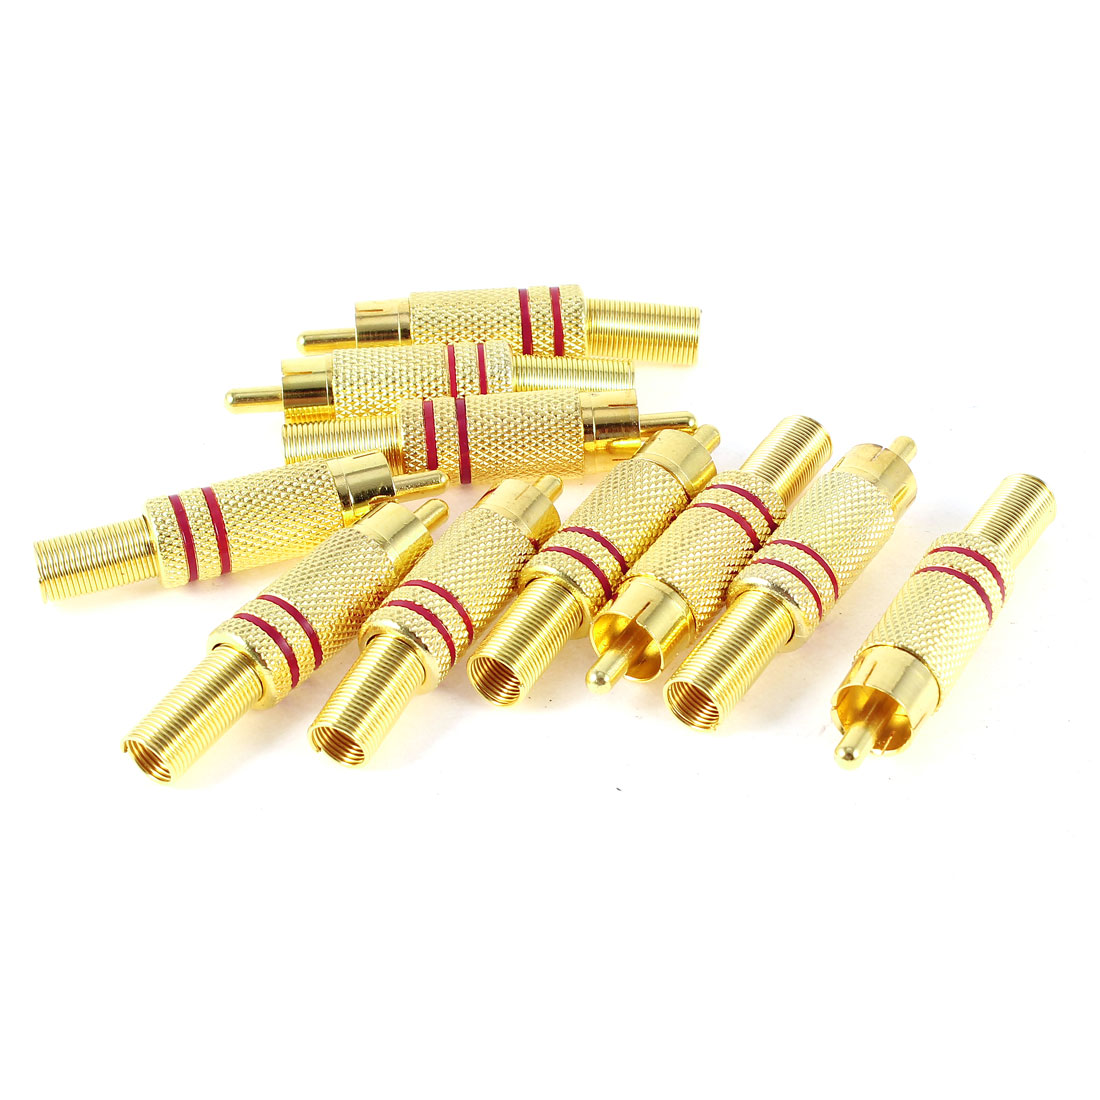 10 Pcs Gold Tone Red Metal Spring RCA Male Plug Audio Connector Adapter